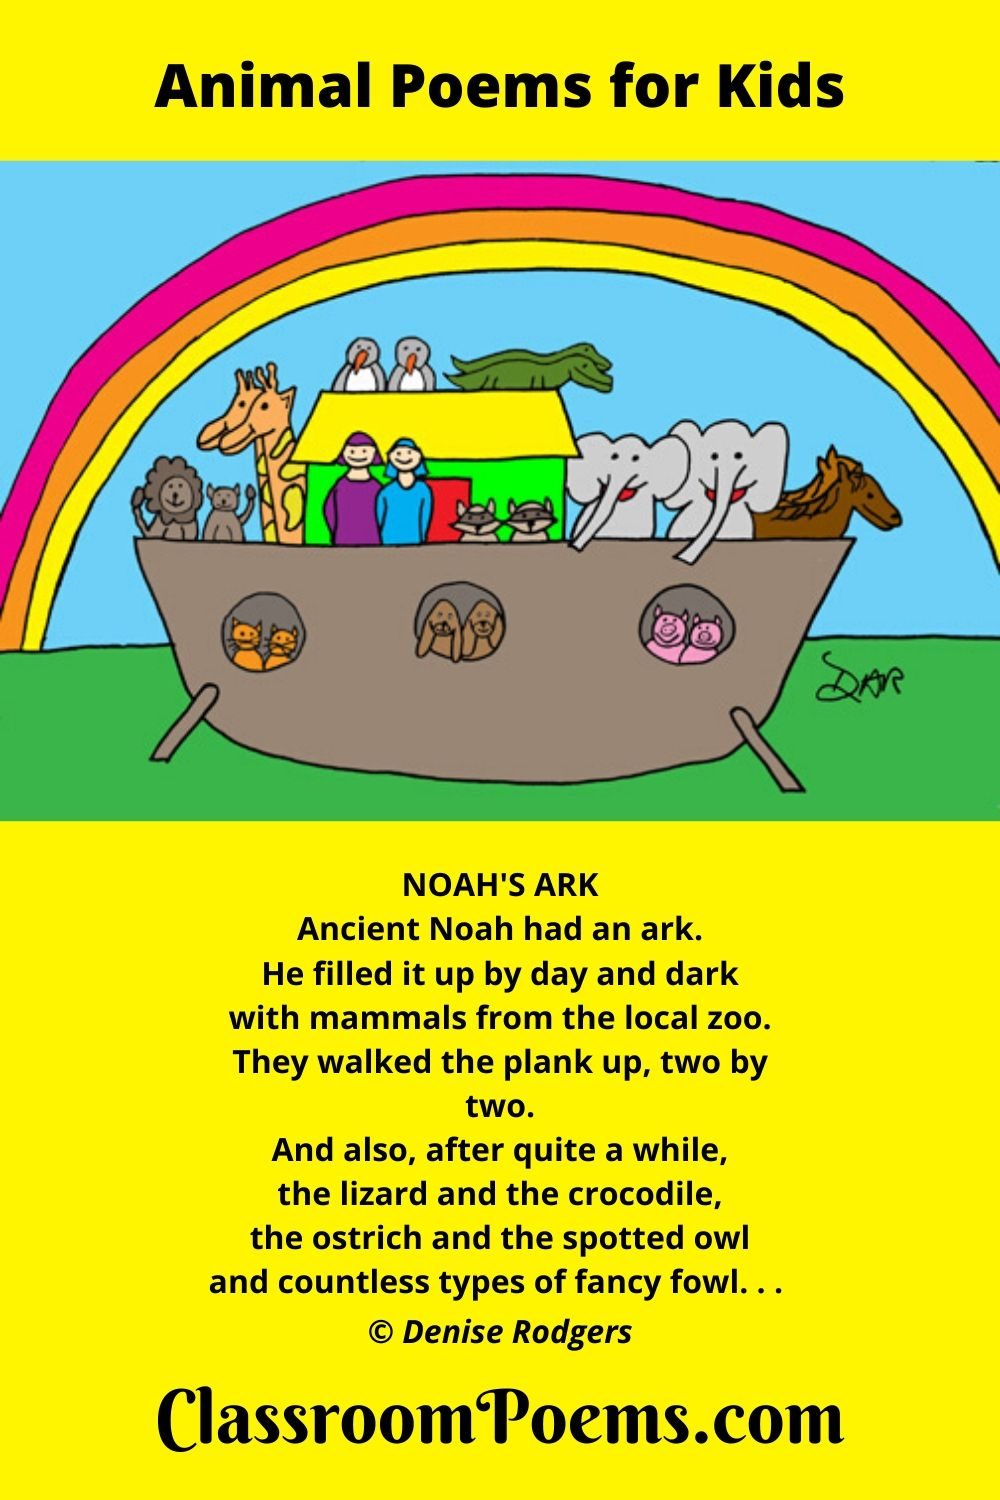 NOAH'S ARK poem for kids by Denise Rodgers on ClassroomPoems.com.